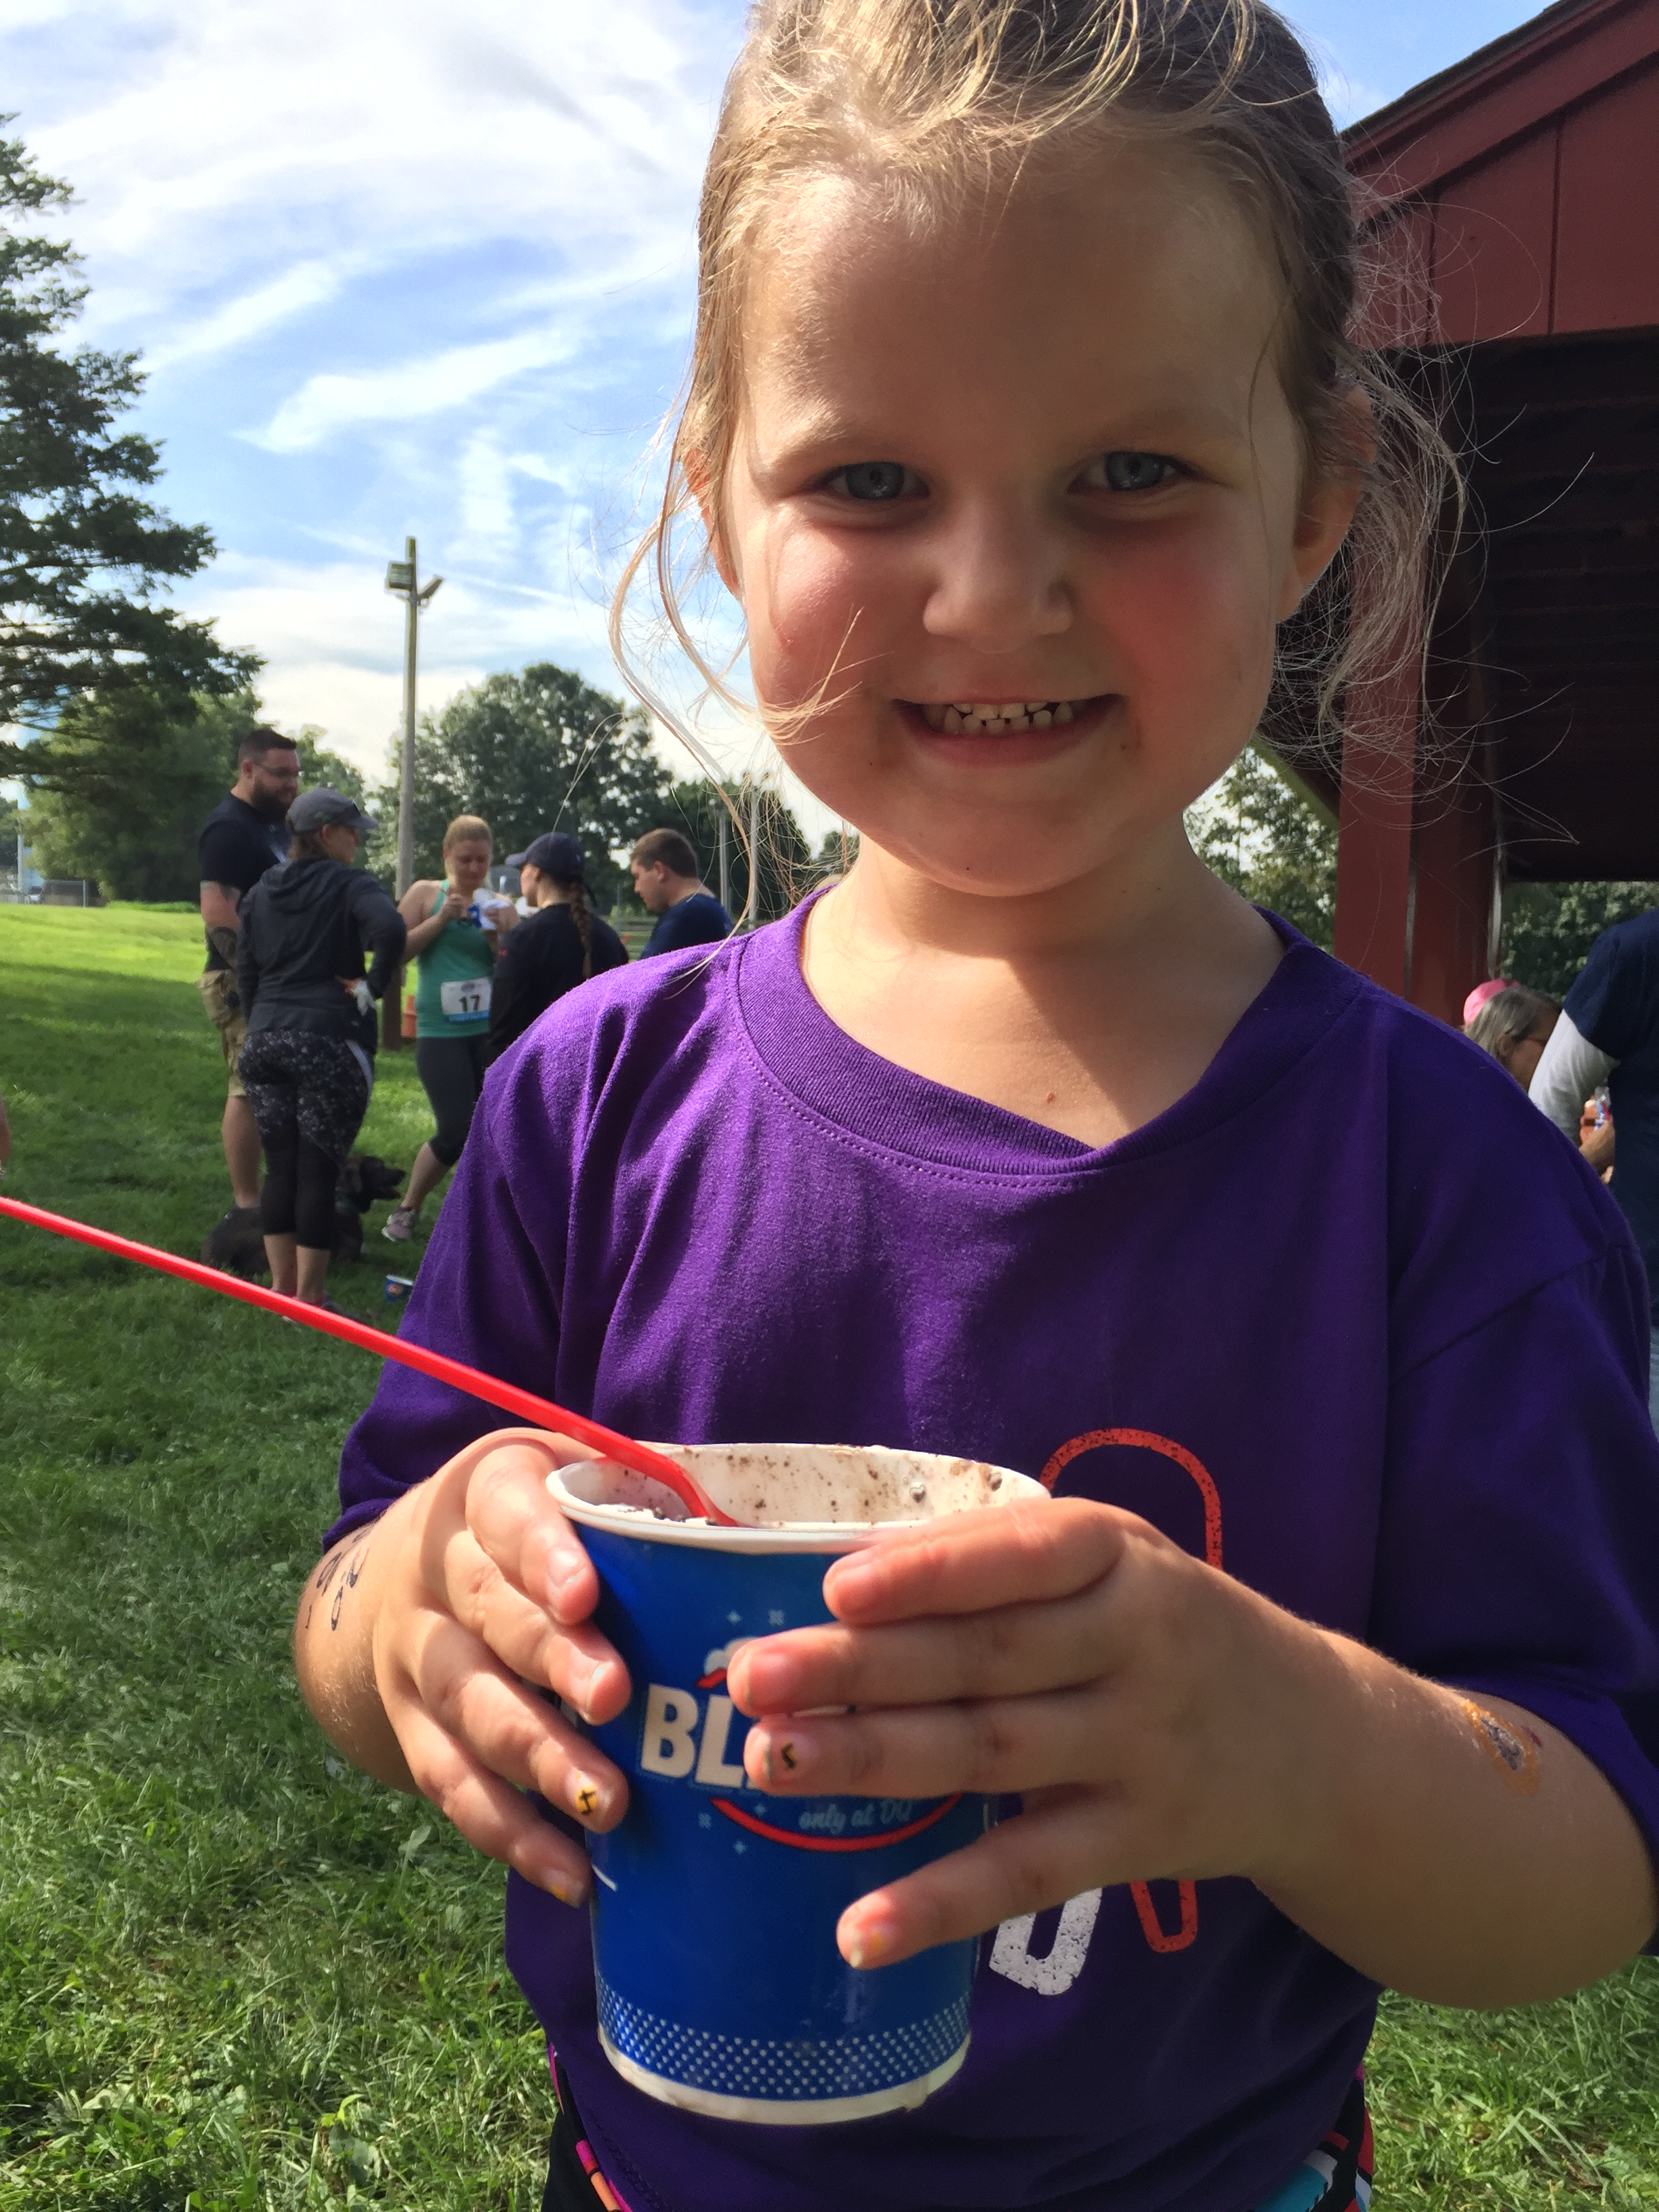 Maddie eating a Blizzard at Blizzard Run!